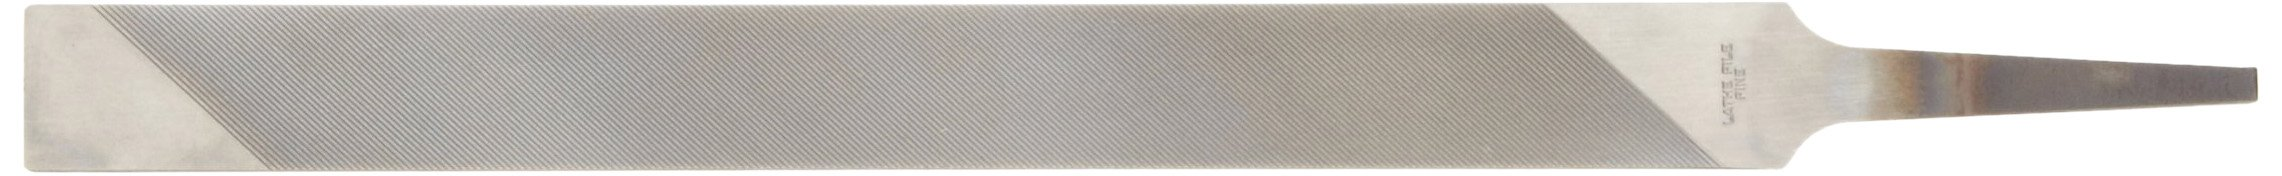 Nicholson Long Angle Lathe Hand File, American Pattern, Single Cut, Rectangular, Coarse, 12'' Length